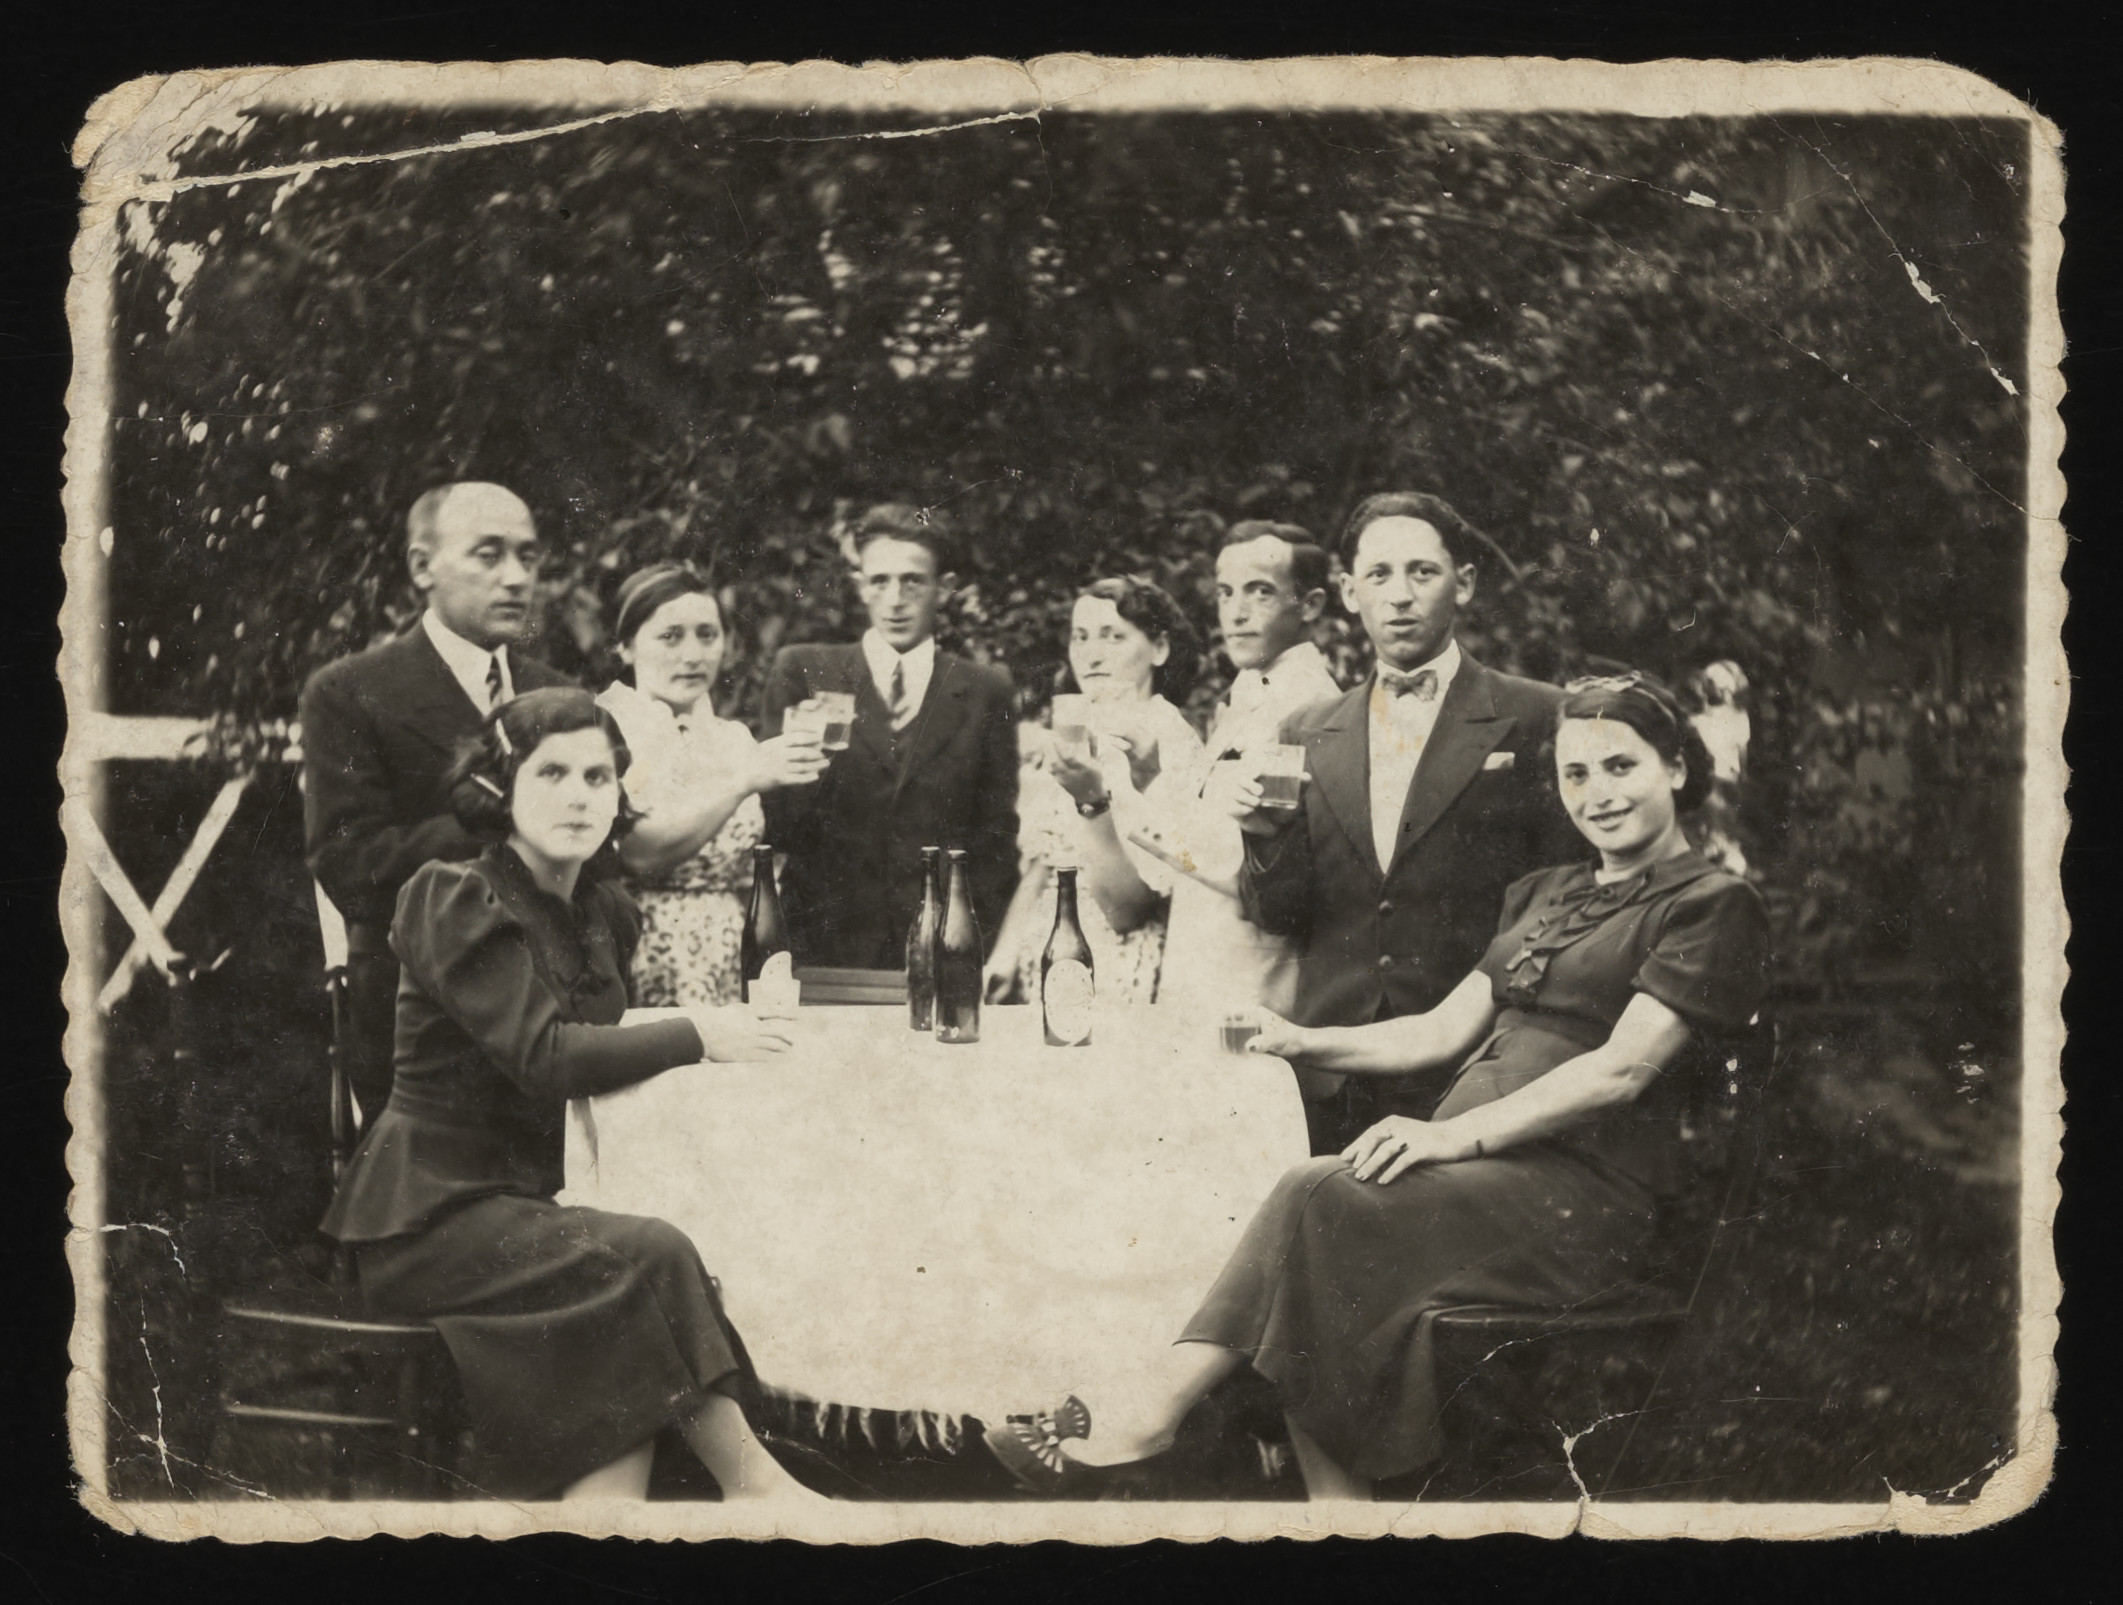 Members of a Jewish family pose around a table outdoors and offer a celebratory toast.  Among those pictured are Mina Handel at the far left and her brother Hersh, pictured fourth from the left.